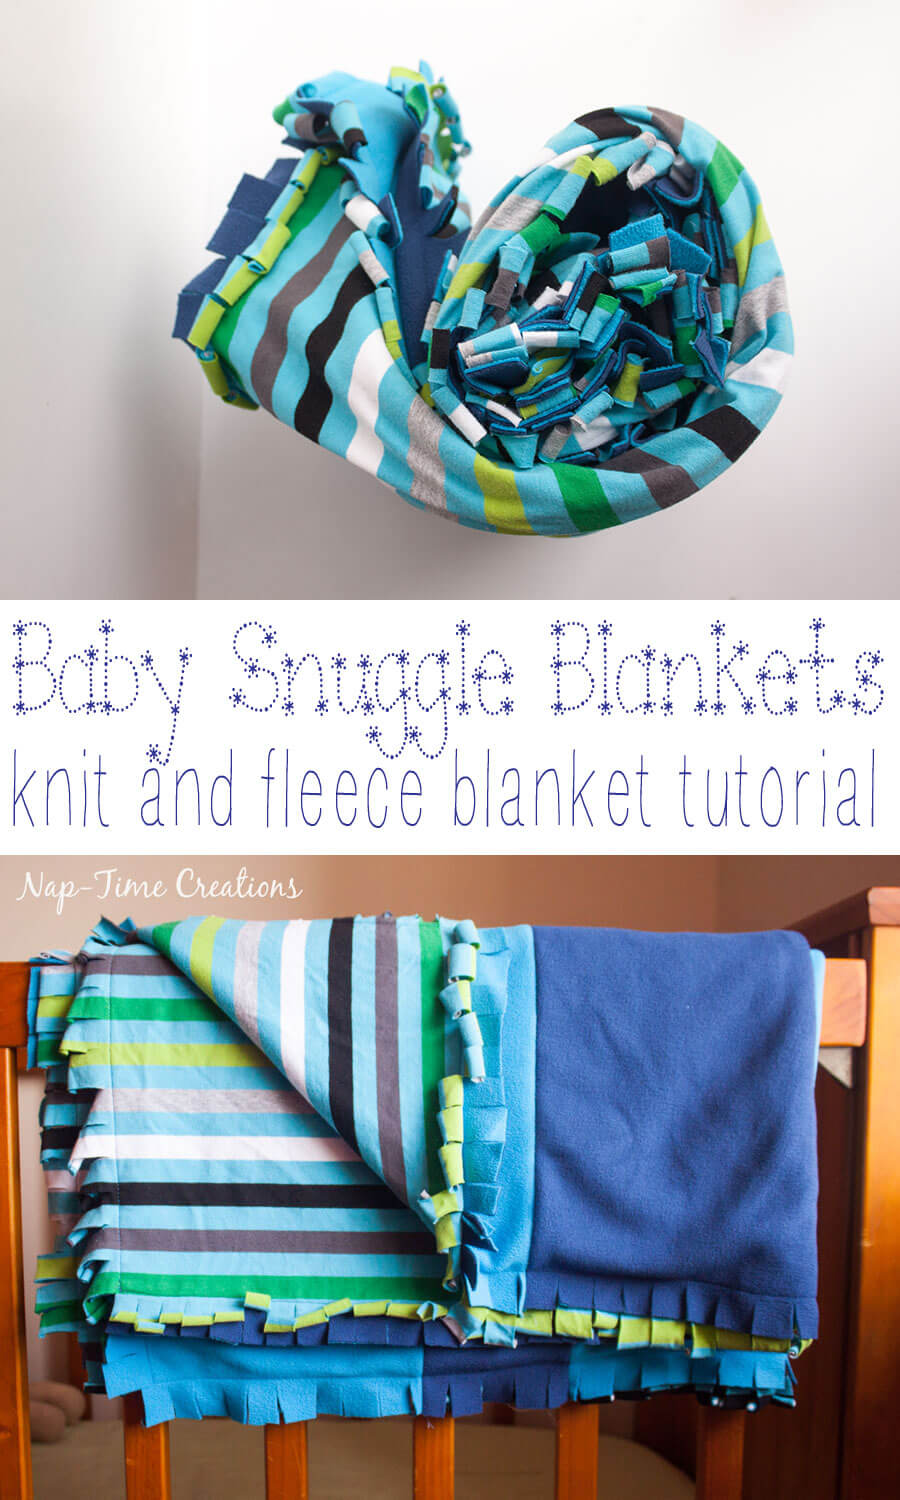 snuggly-baby-blanket-tutorial-with-knit-and-fleece-easy-sewing-project-from-Nap-Time-Creations #SnuggleUpMoments {ad}